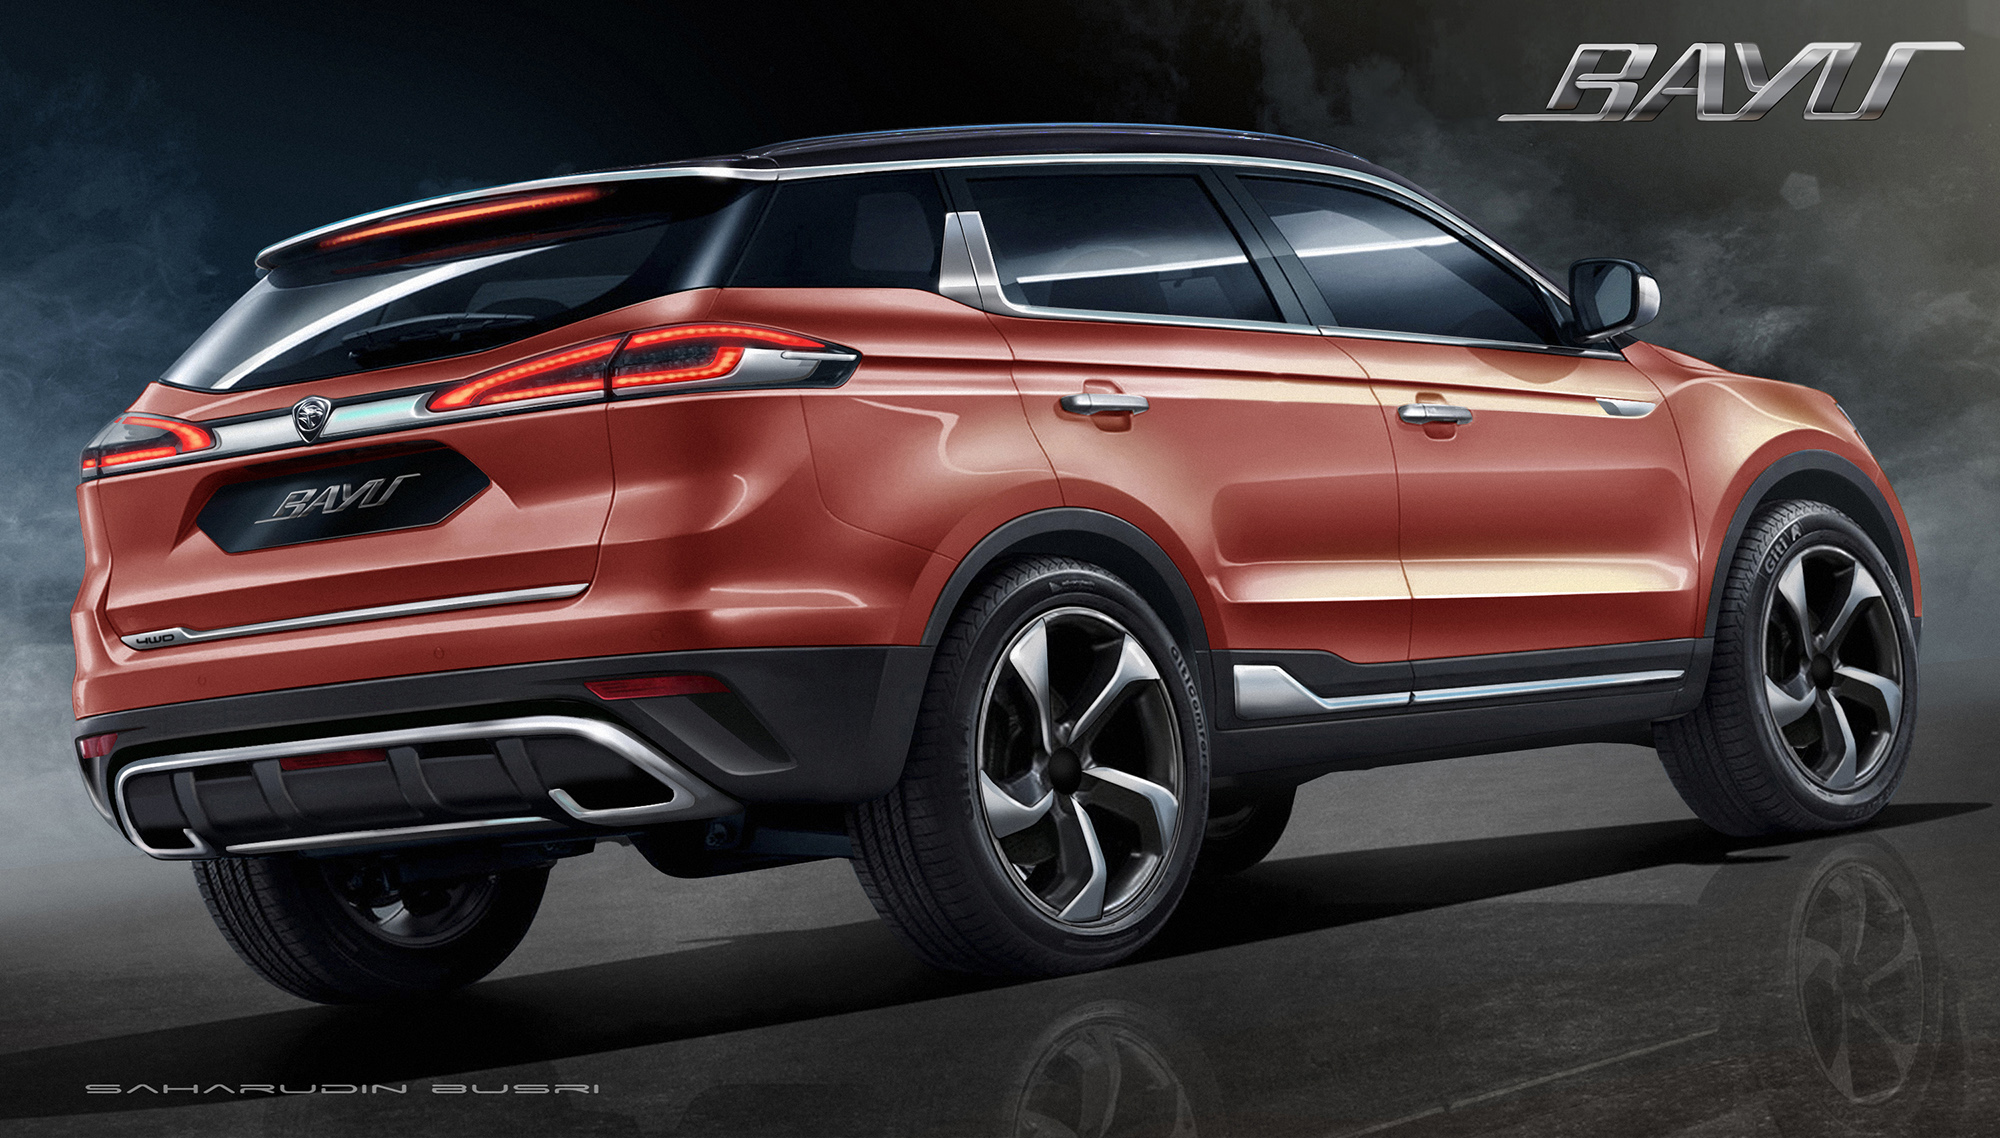 Proton Bayu A Geely Based Suv Design By Mimos